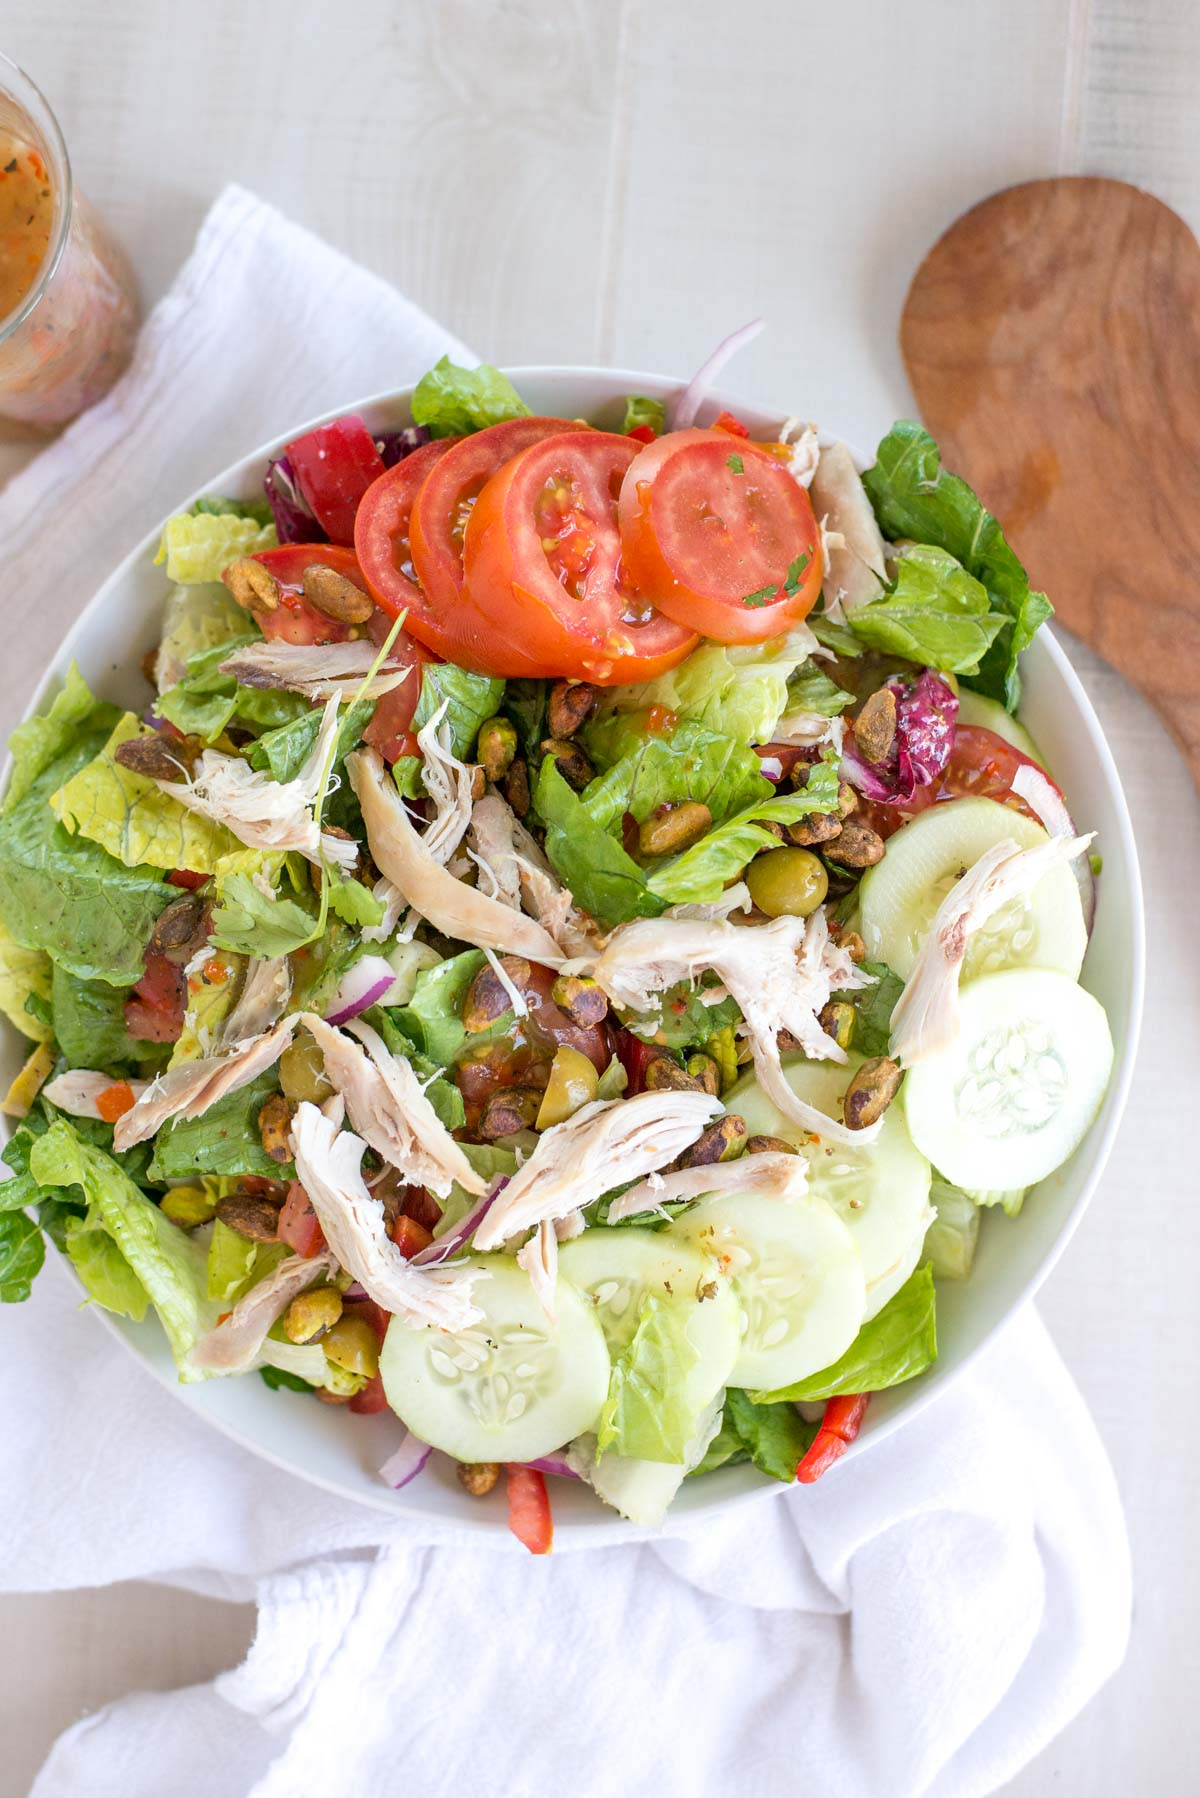 The most delicious salad you'll ever eat that takes 10 minutes to prep. Quick Italian Salad with Shredded Chicken